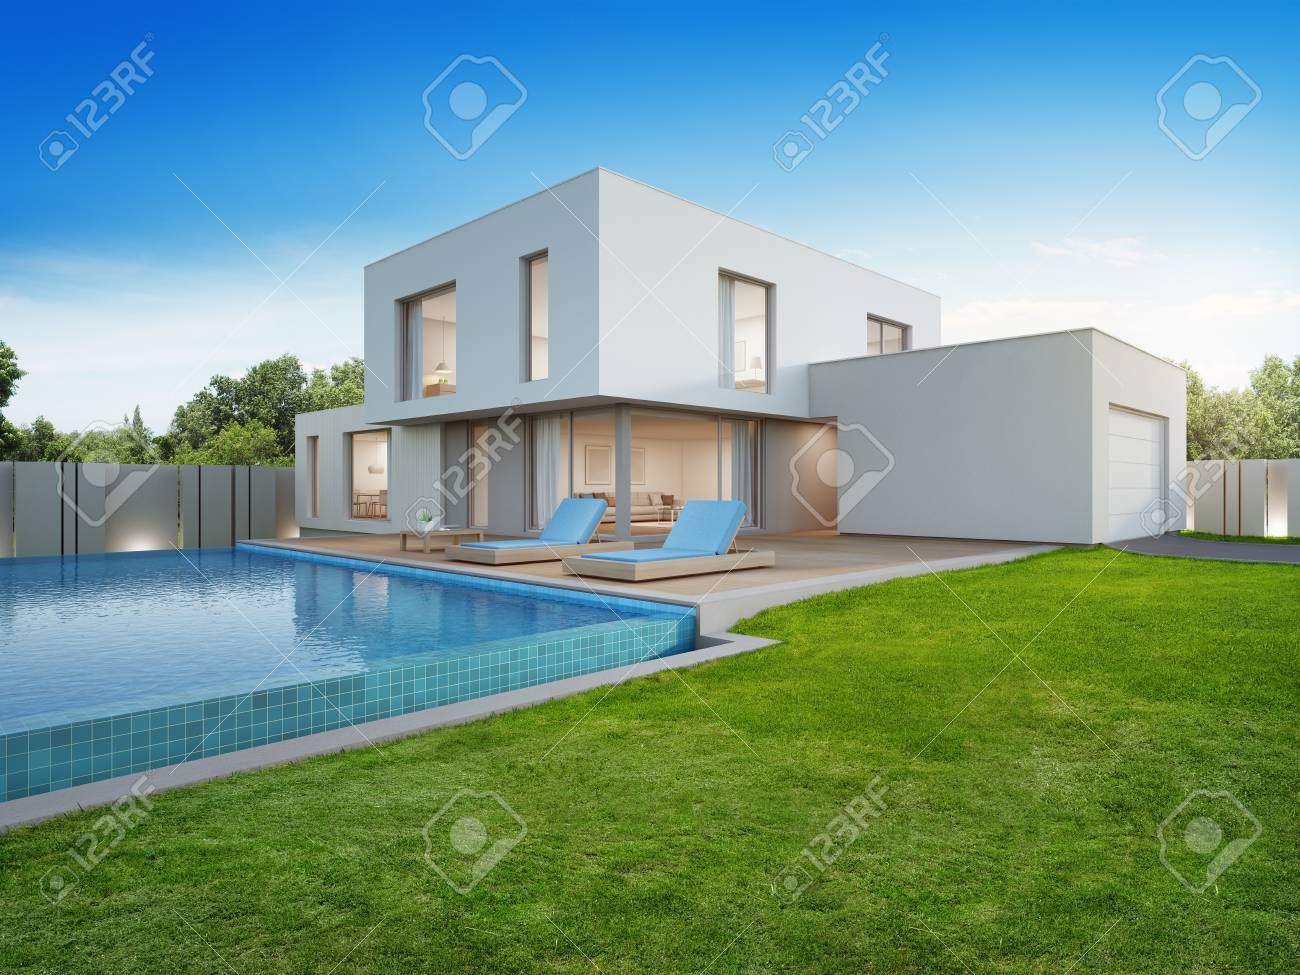 Luxury House With Swimming Pool And Terrace Near Lawn In Modern Stock Photo Picture And Royalty Free Image Image 89824650